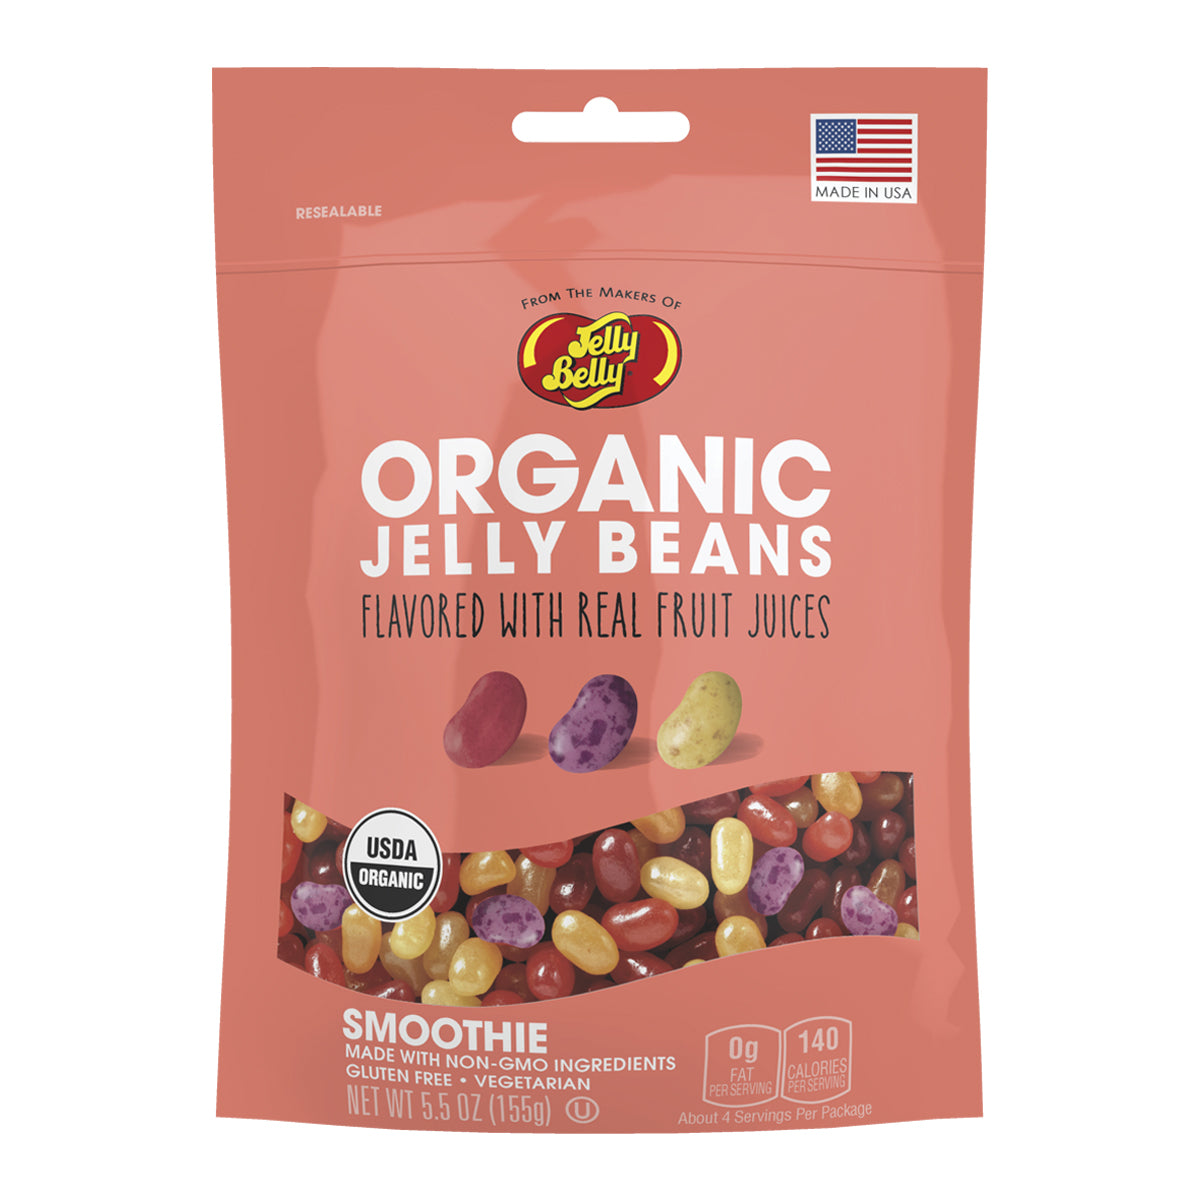 Organic Jelly Beans - Fruit Smoothie Flavor by Jelly Belly